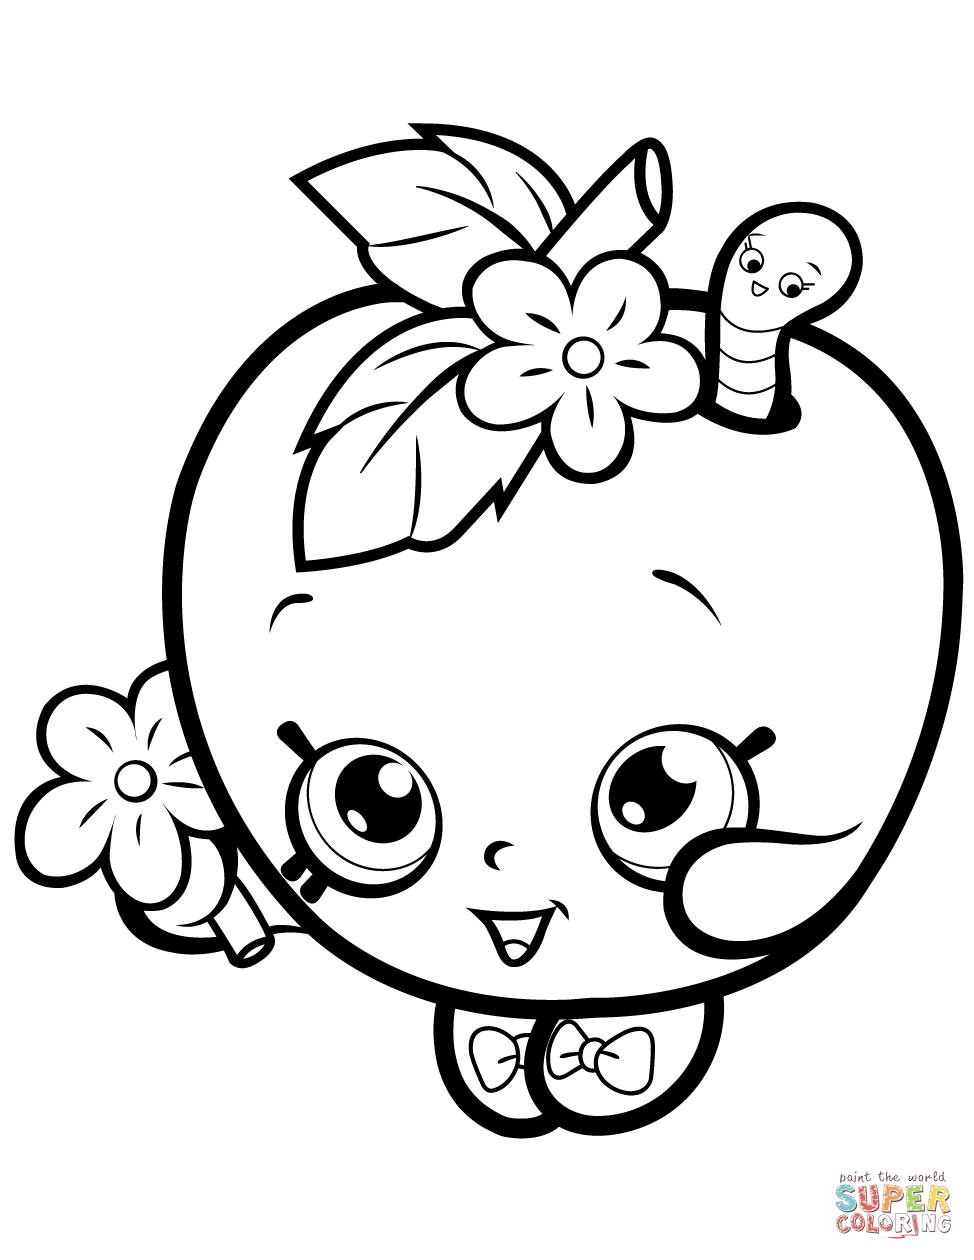 Coloring Pages Moana Free Download Best Coloring Pages Moana On